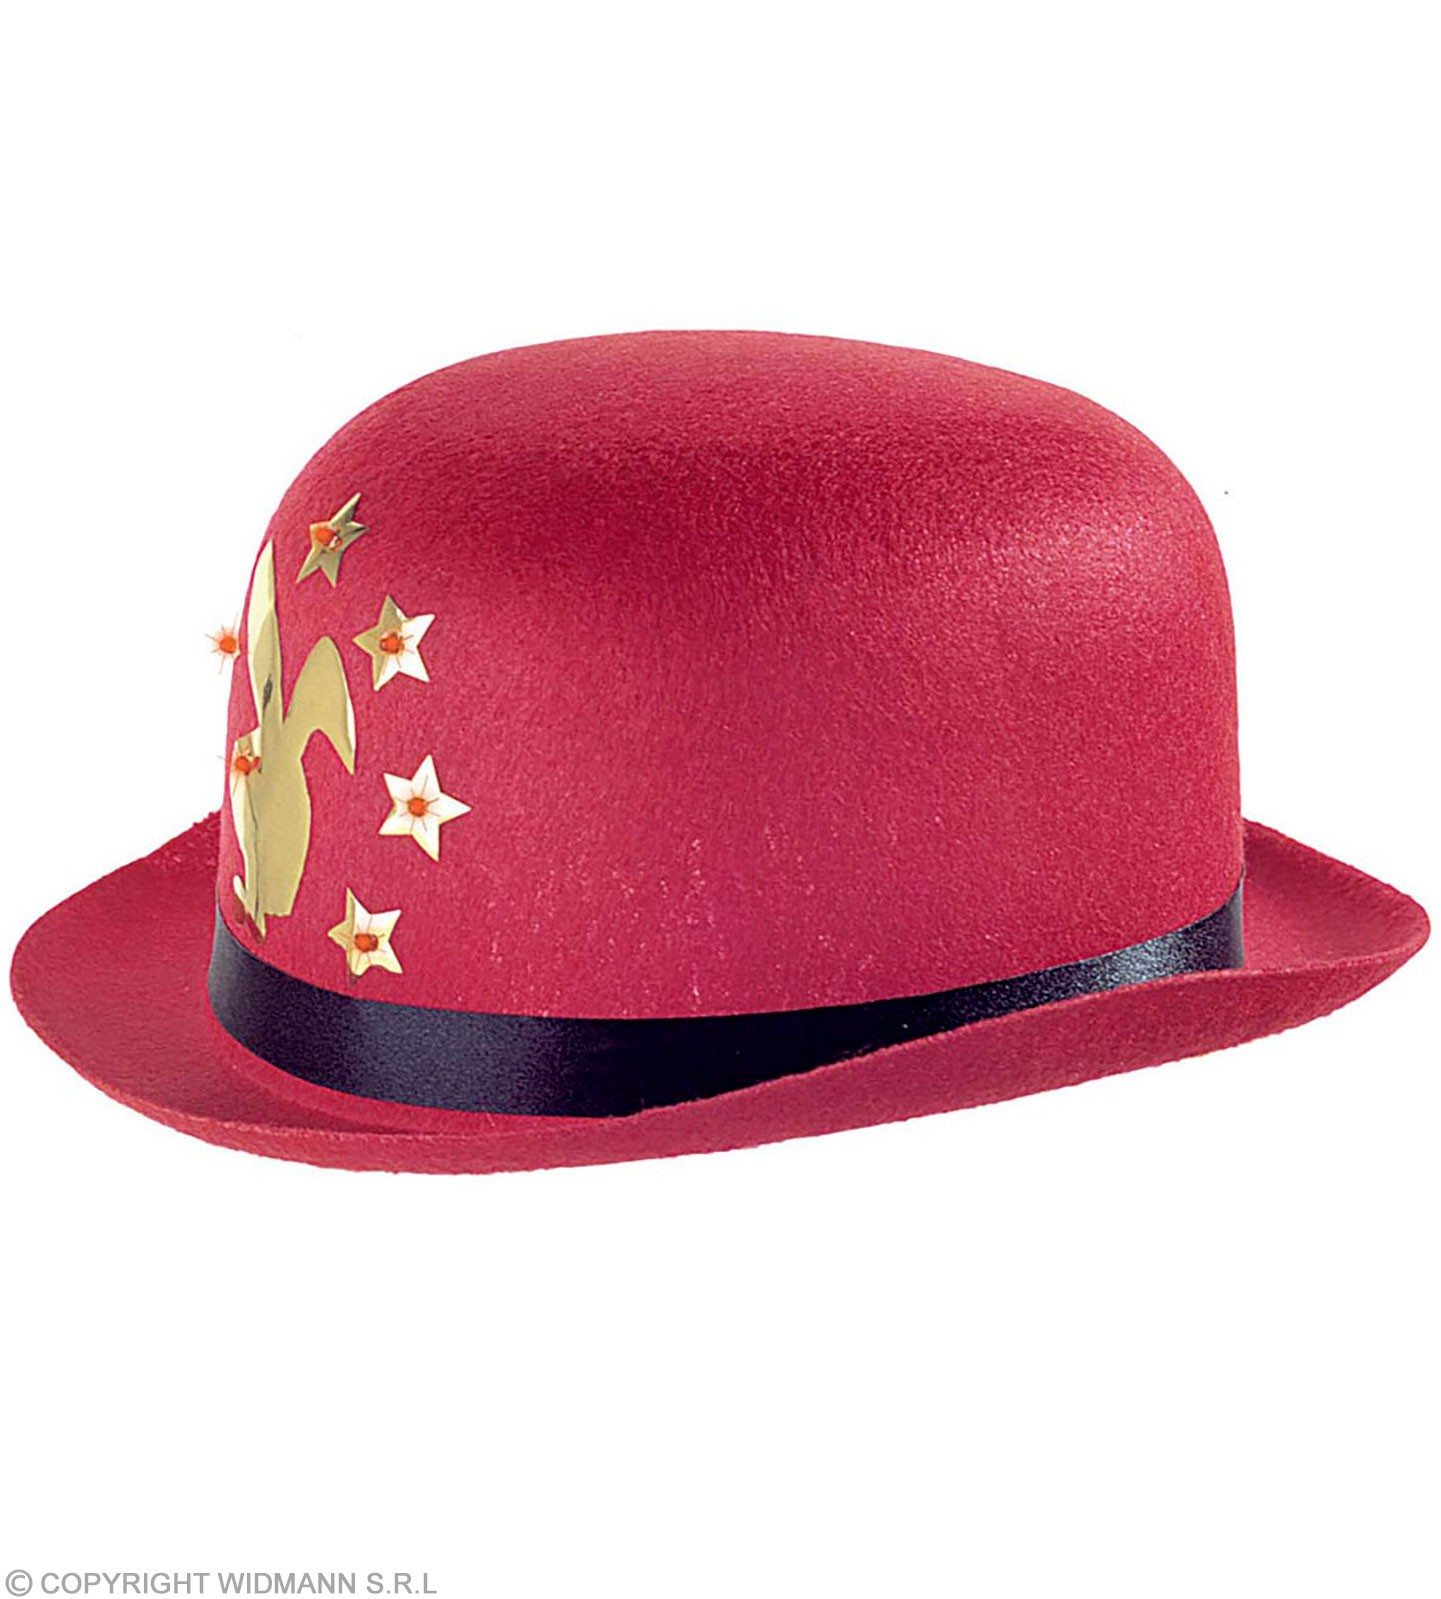 Light Up Bowler Hat - Fancy Dress